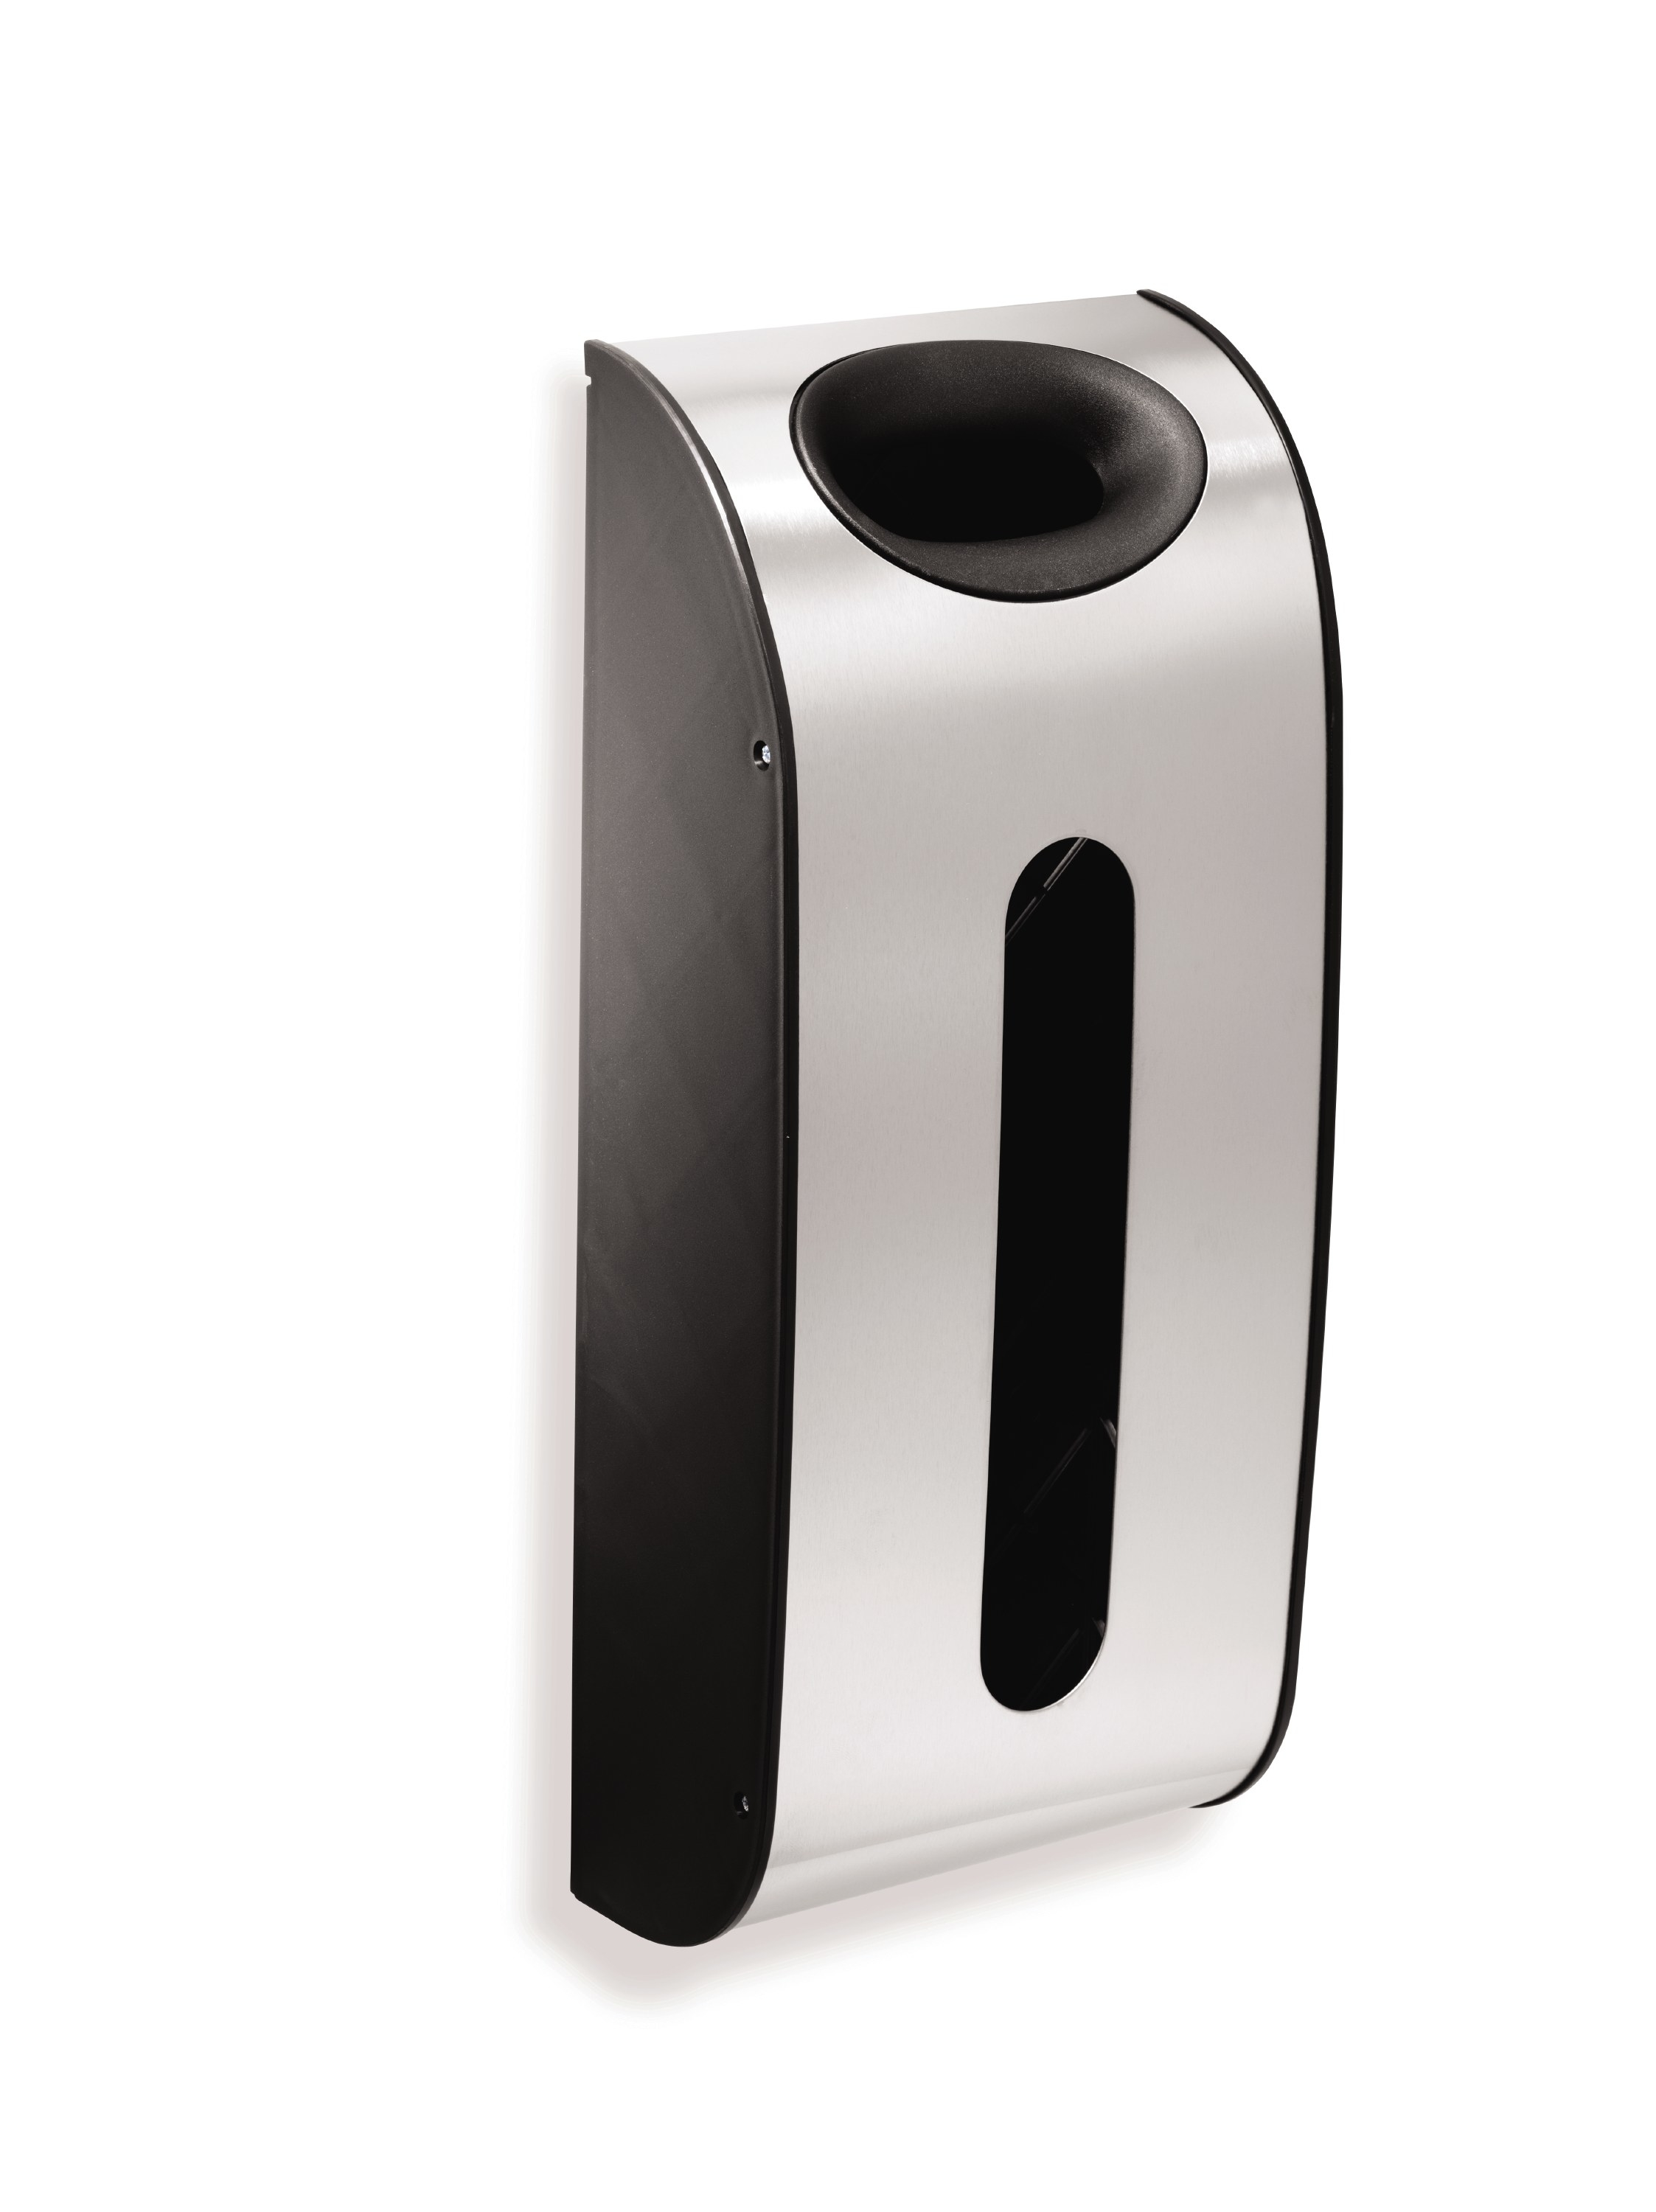 Brushed stainless steel trash bag holder